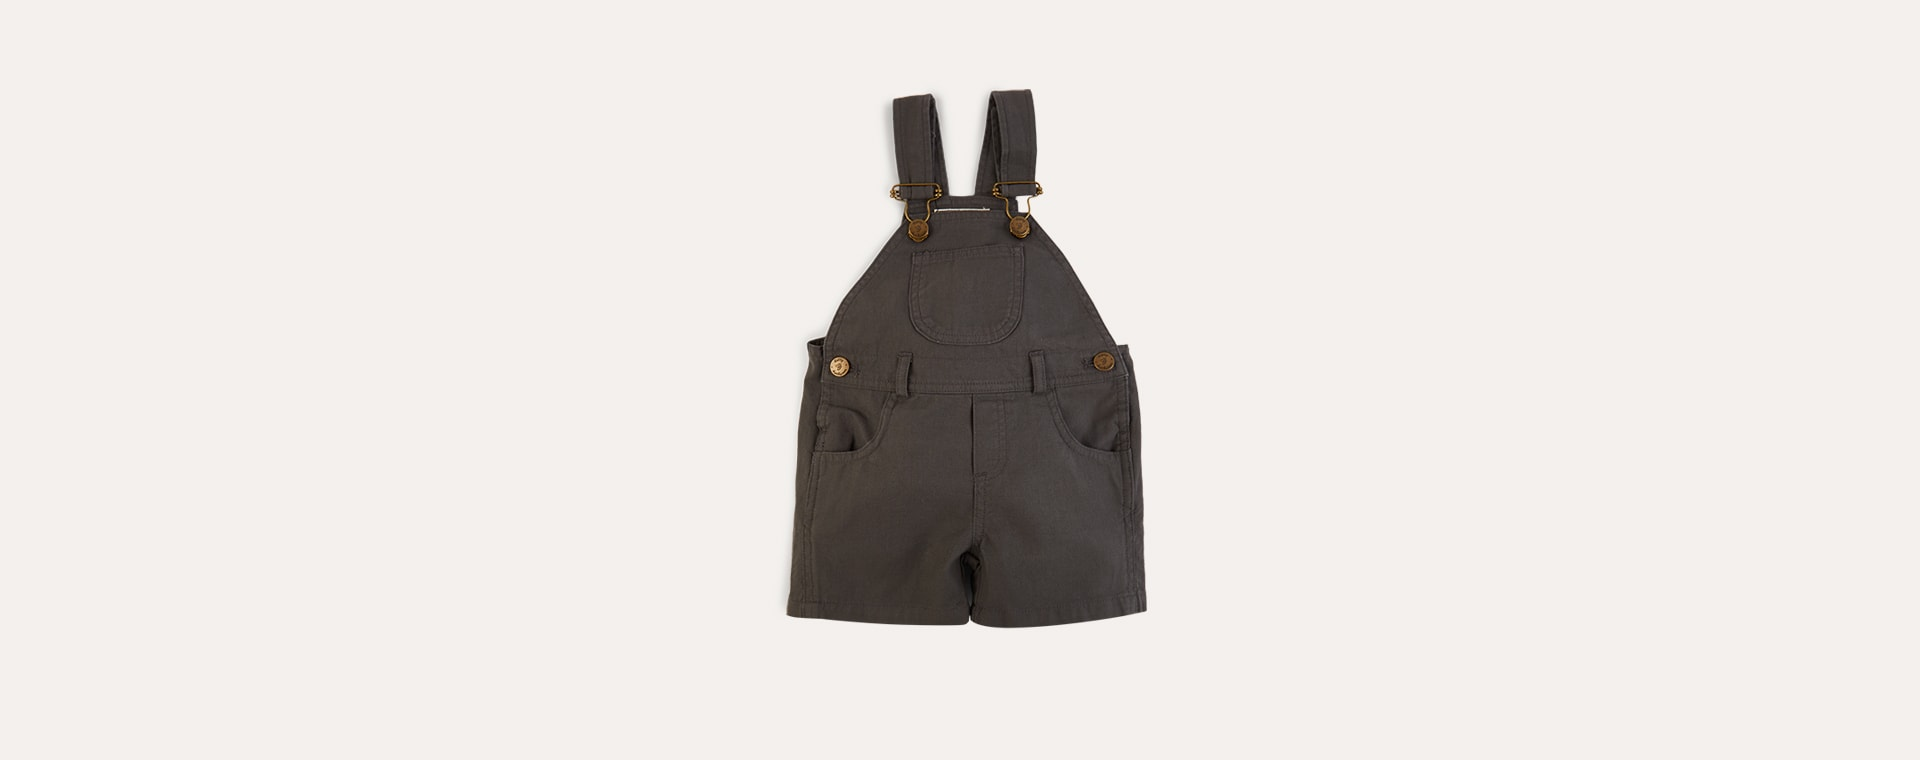 Pebble Dotty Dungarees Cotton Short Dungarees